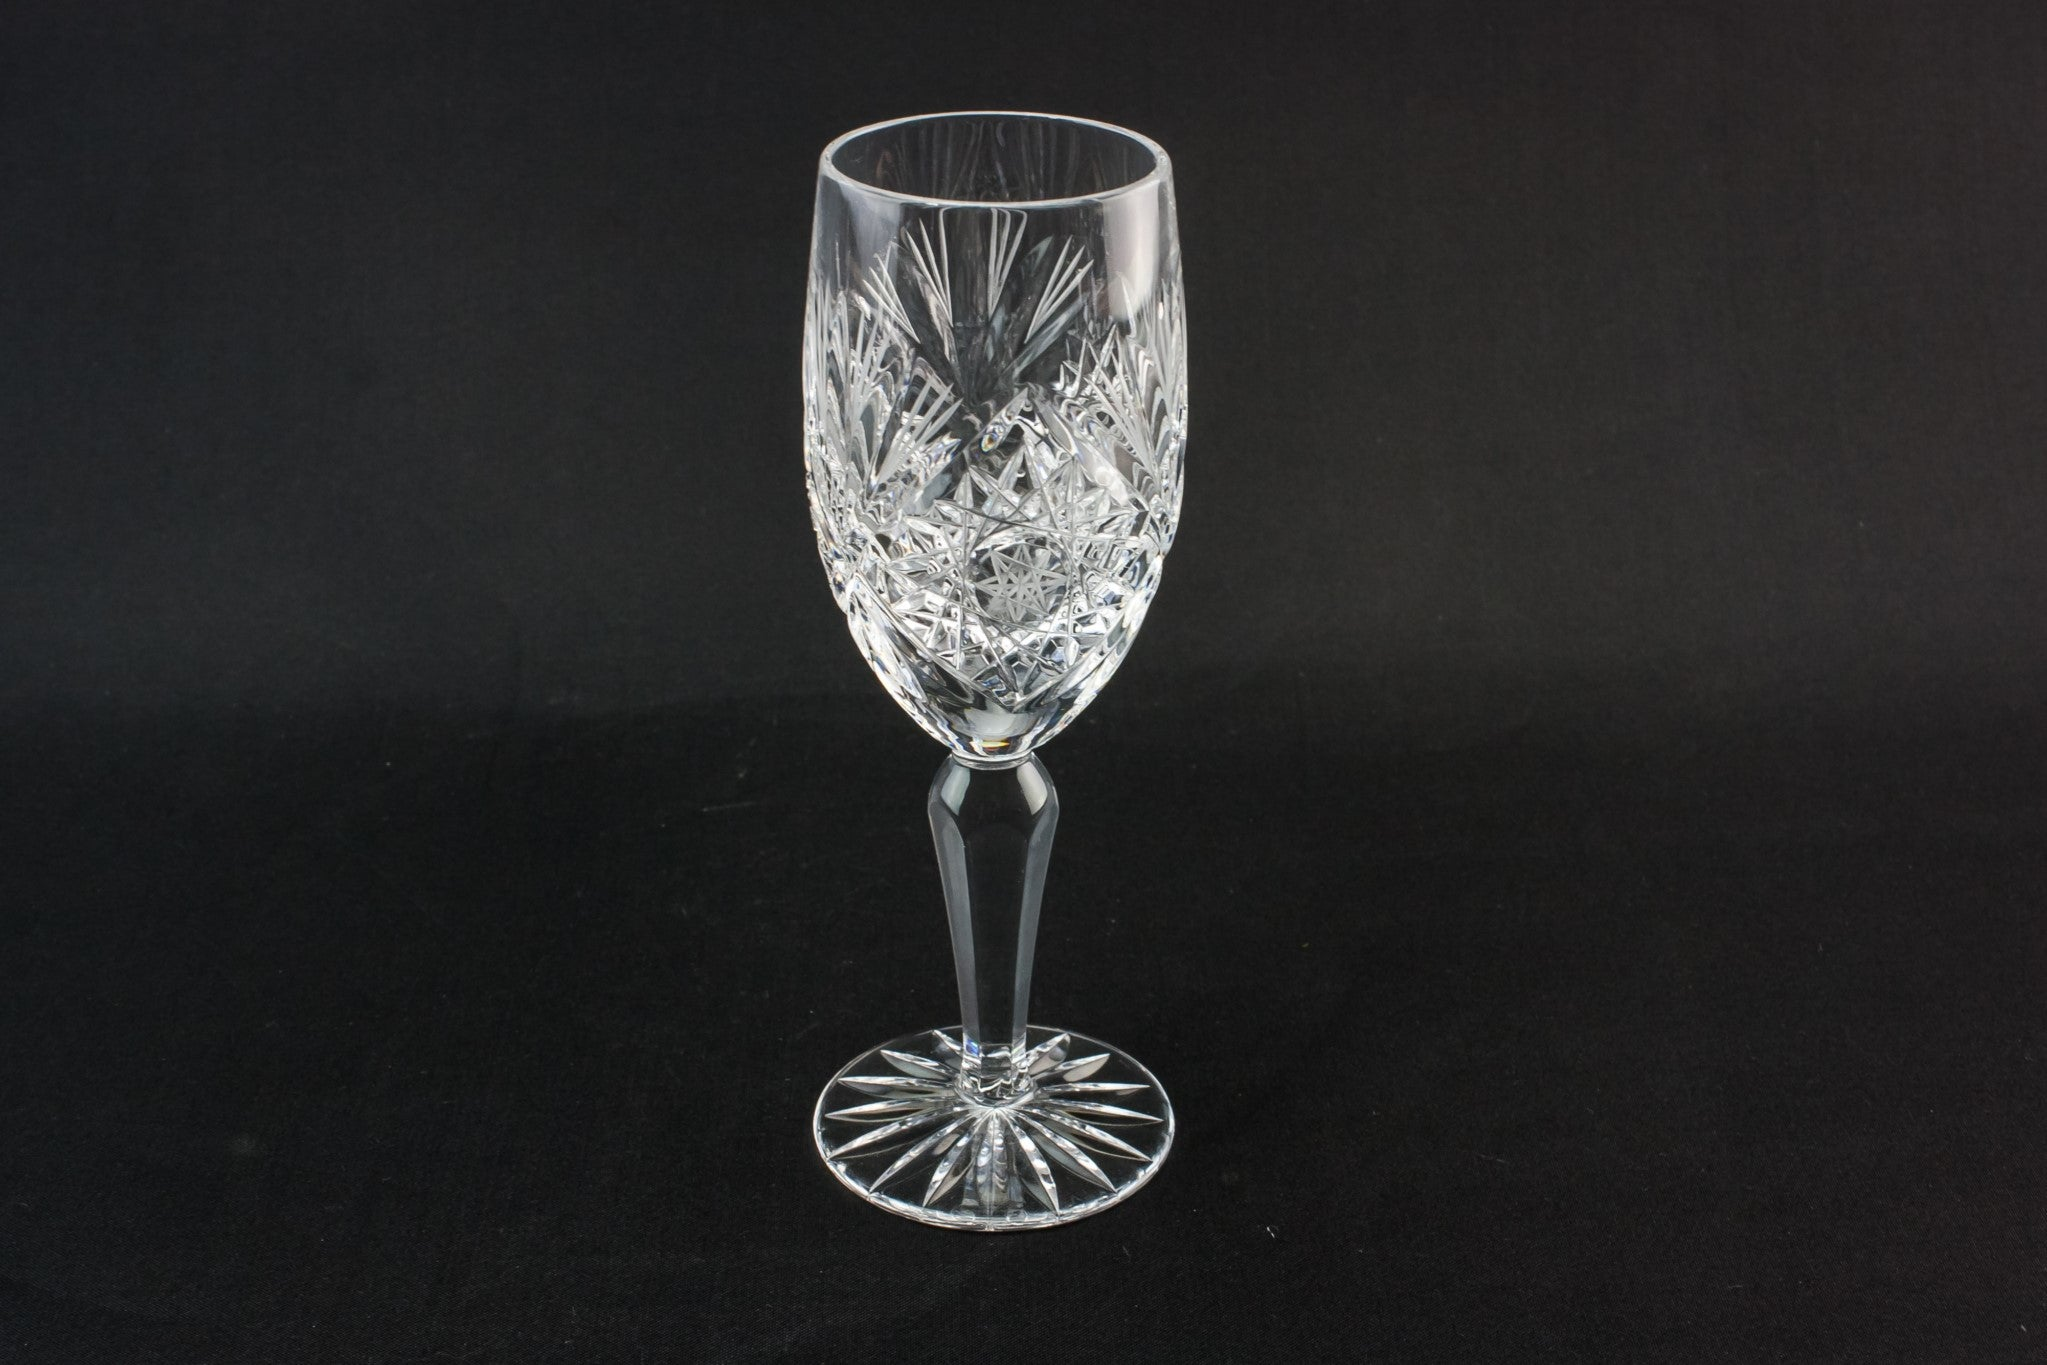 2 stem wine glasses